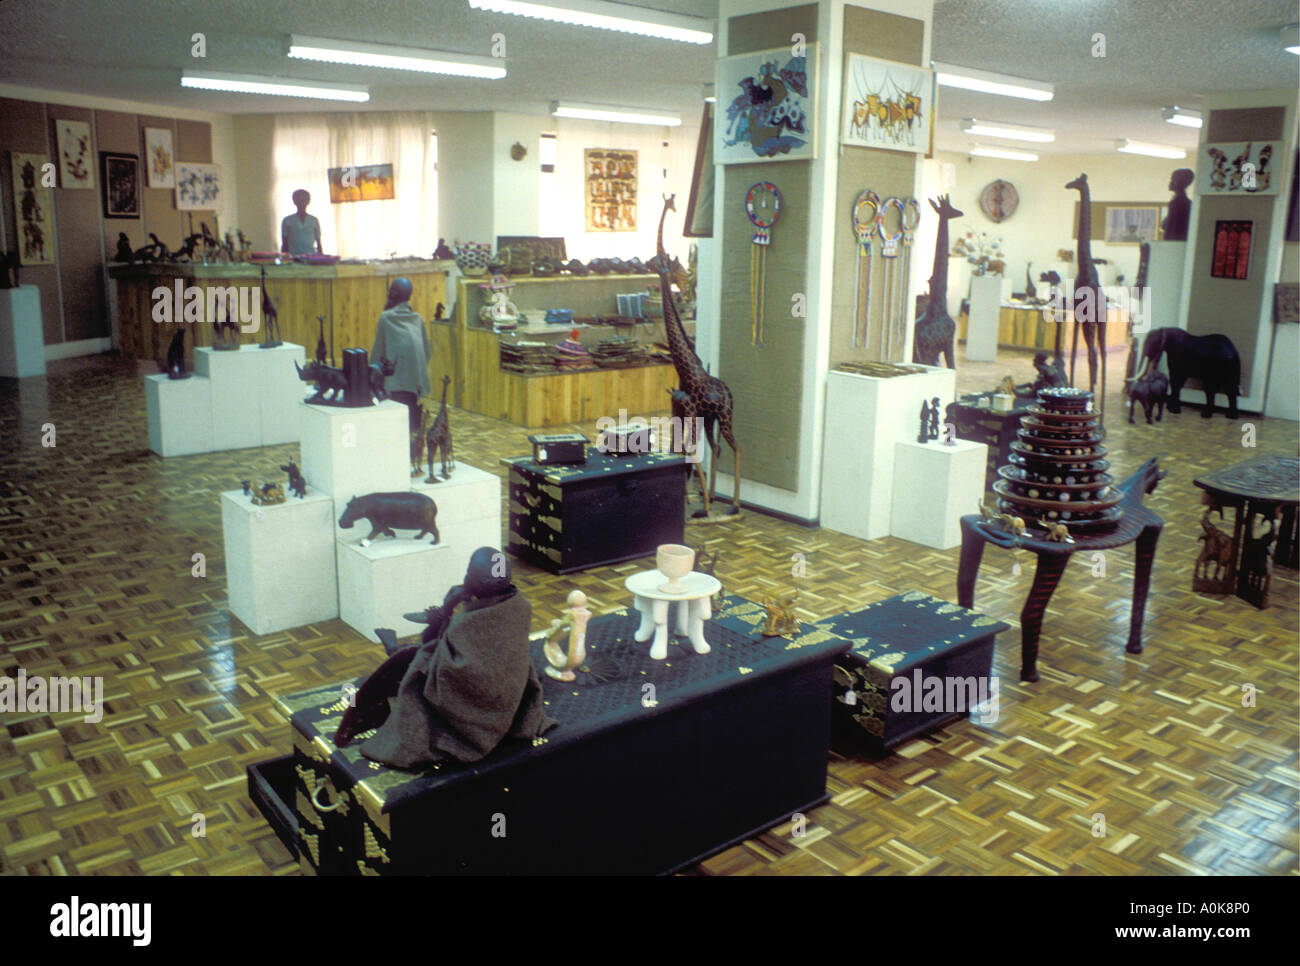 shop shopping carvings stockfotos shop shopping carvings bilder alamy. Black Bedroom Furniture Sets. Home Design Ideas